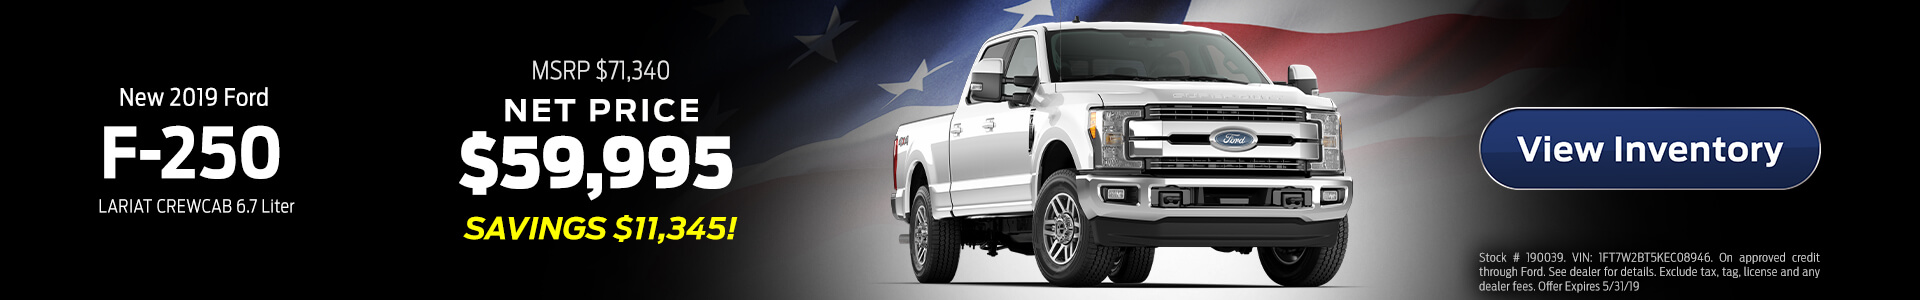 Ford F-250 $59,995 Purchase